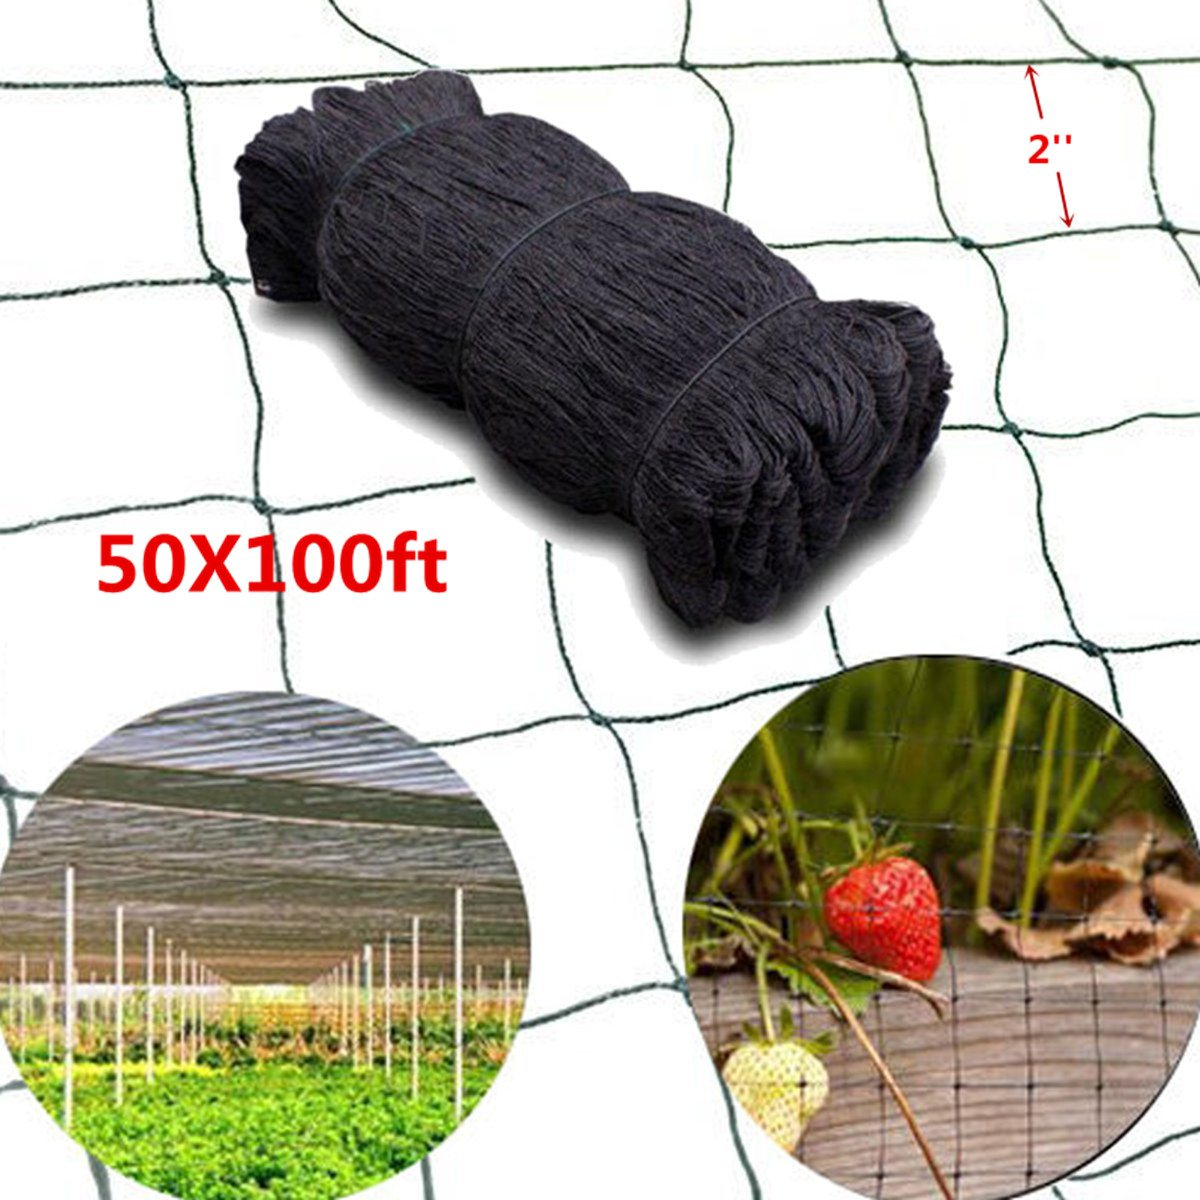 15*30M Anti Bird Net Protect Planter Mesh 100'X50' Mosquito Bug Insect Net Hunting Barrier Garden Fish Netting 2 Mesh Hole